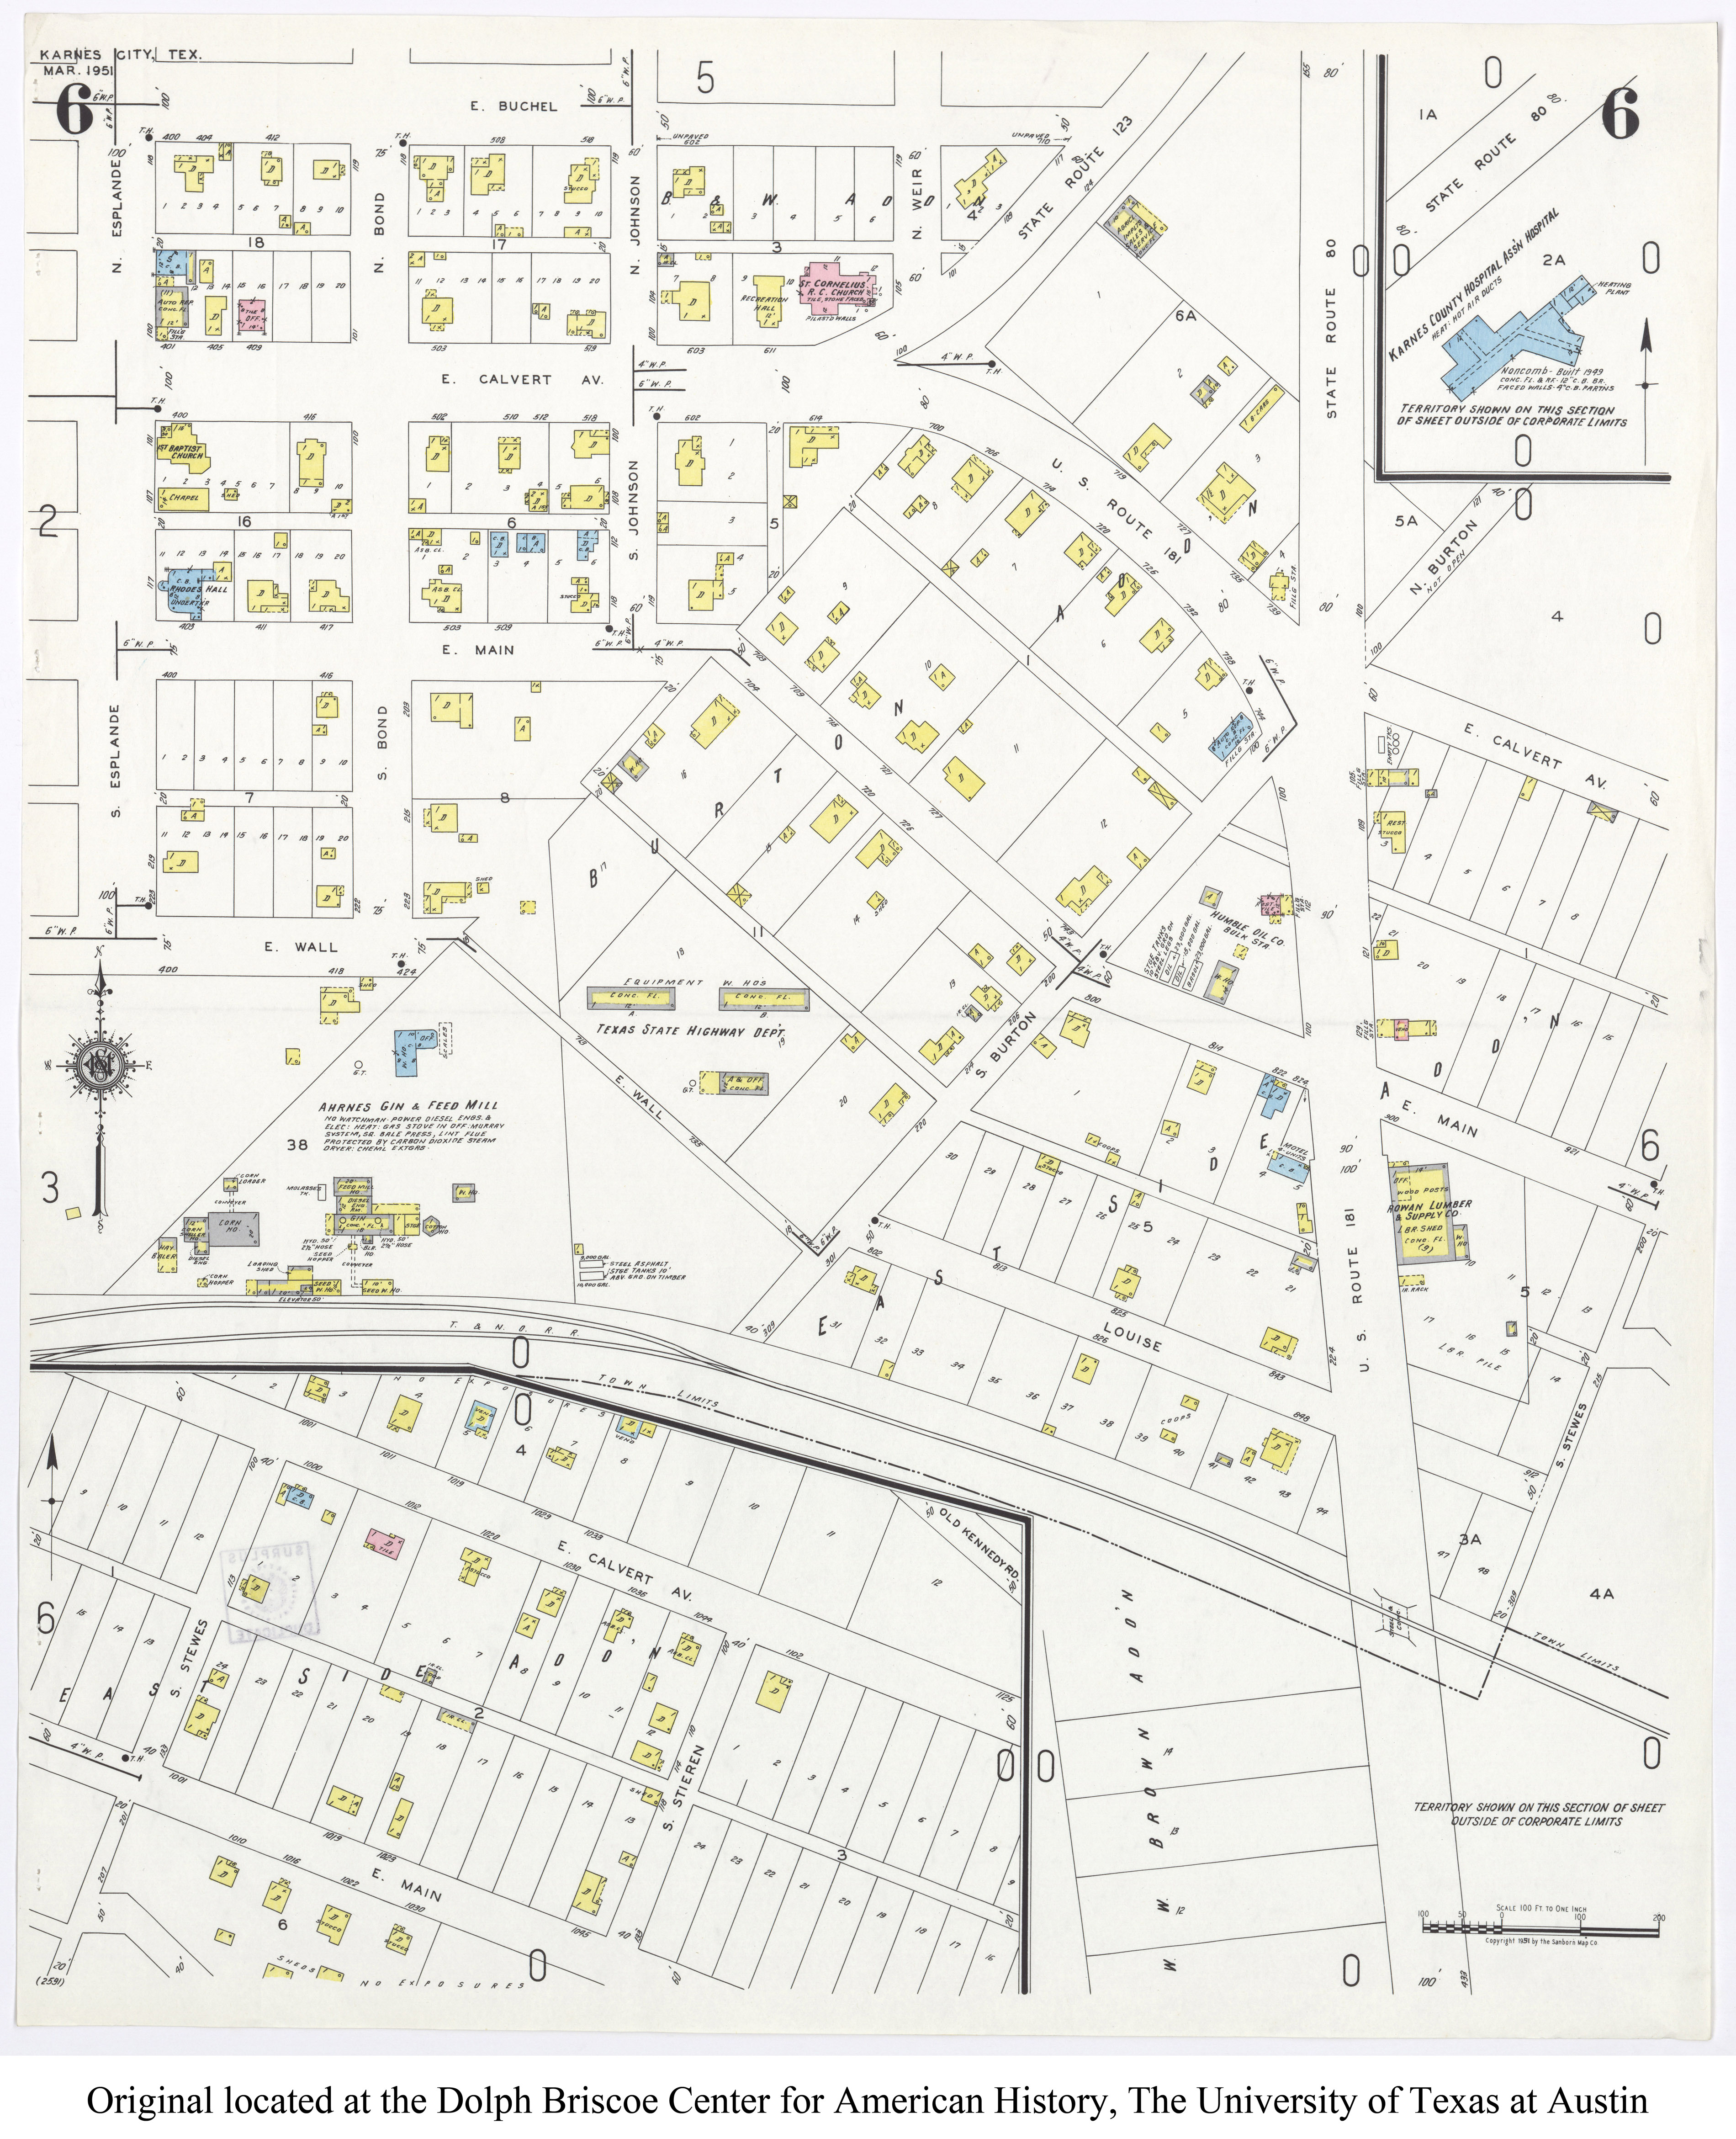 Sanborn Maps of Texas - Perry-Castañeda Map Collection - UT ... on map of dimmit county texas, cities in karnes county texas, political map of texas,